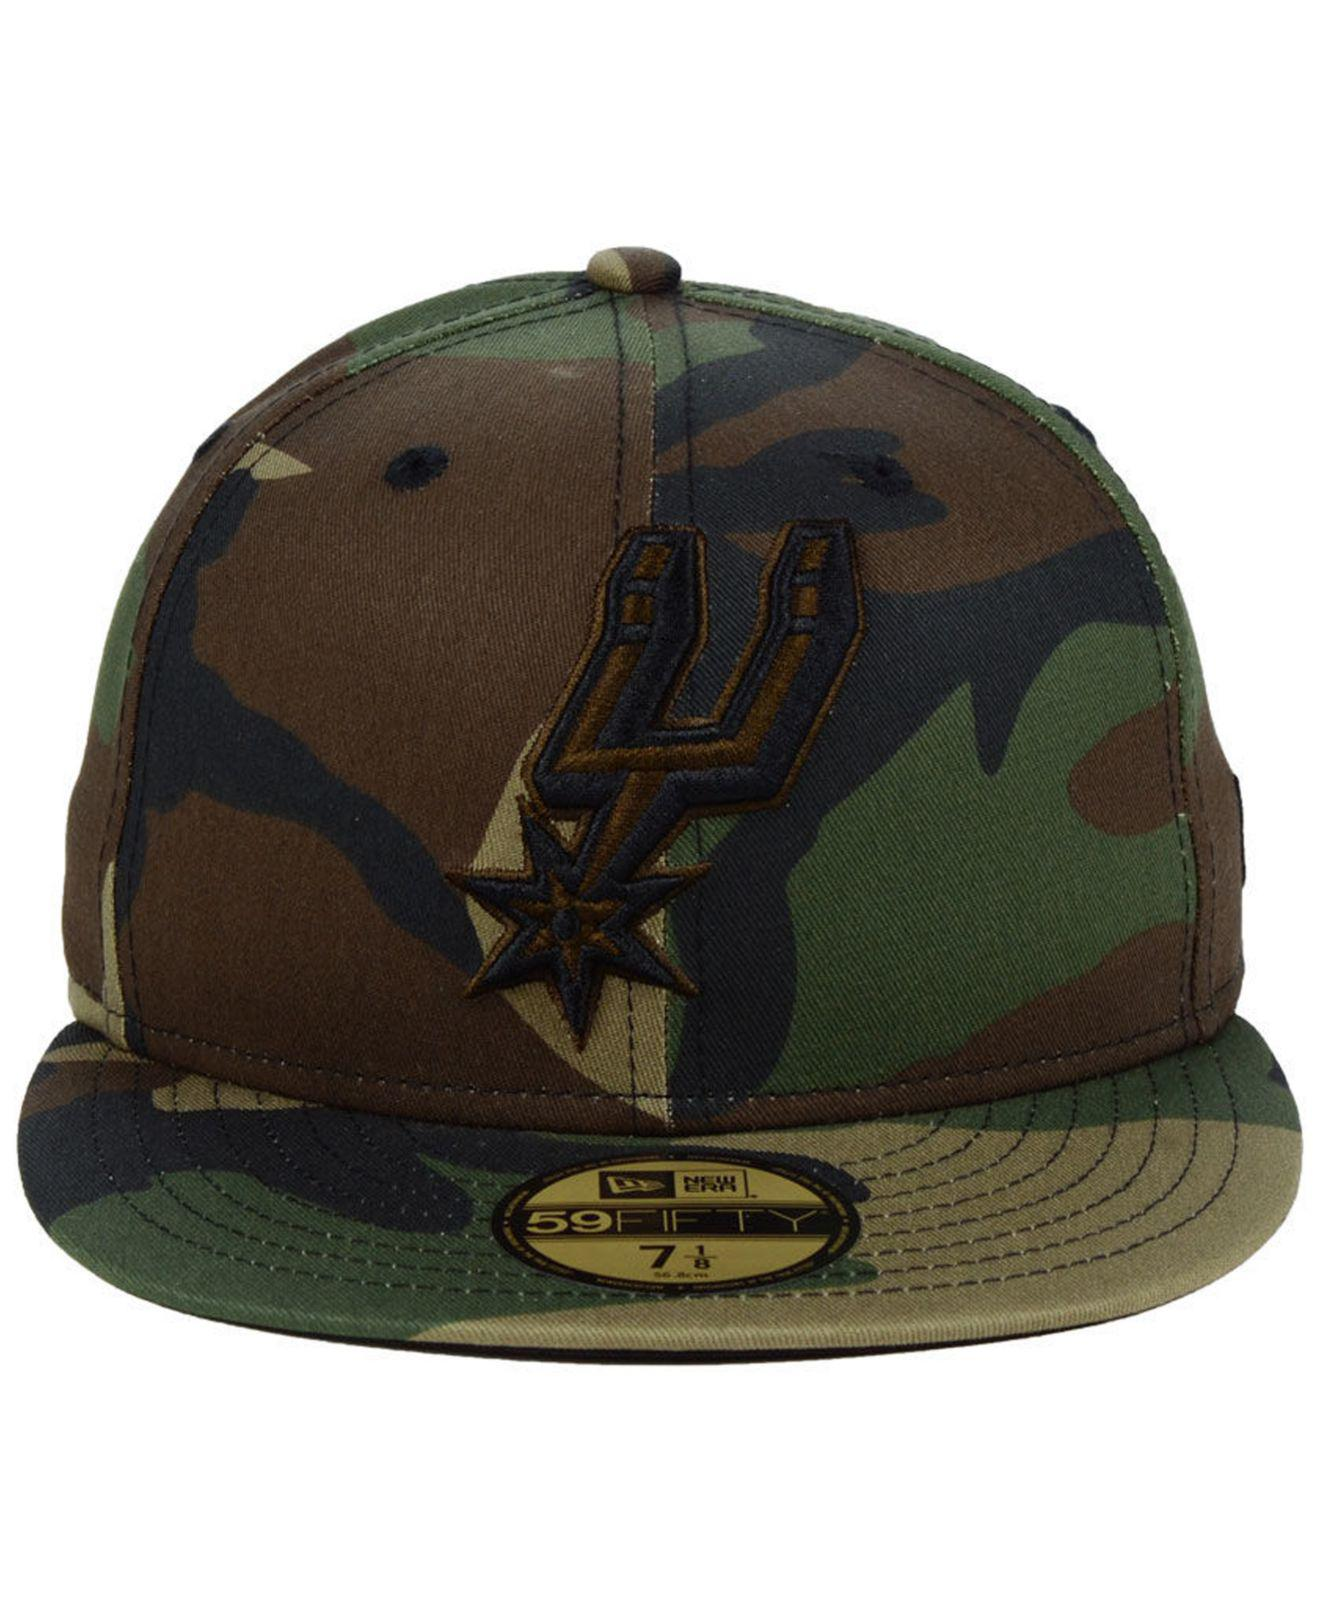 Lyst - Ktz San Antonio Spurs Fall Prism Pack 59fifty-fitted Cap in Green  for Men 57f717f81665